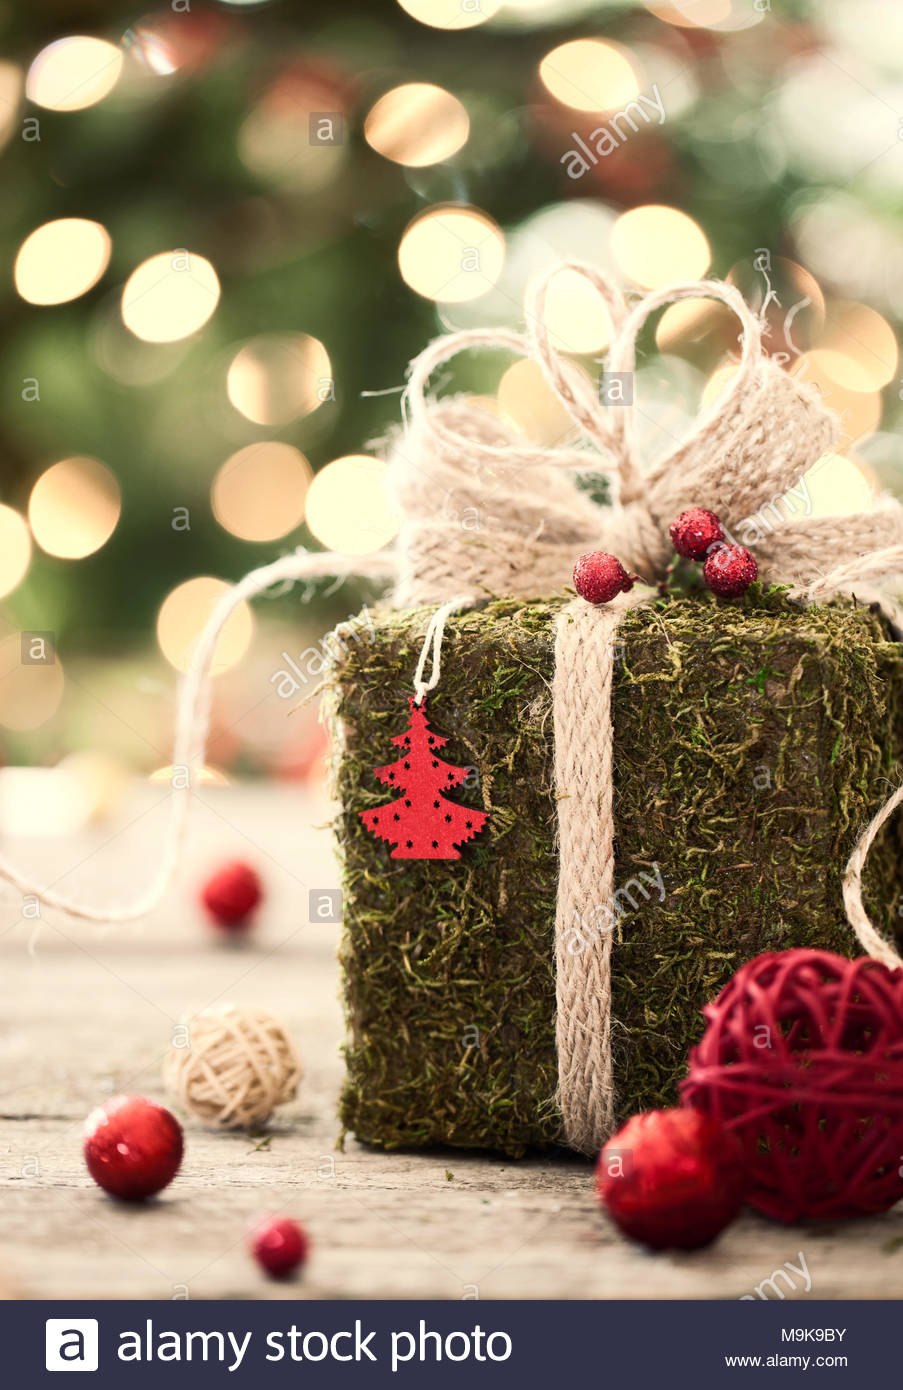 Eco environmentally friendly, holiday christmas moss gift on rustic wood - Stock Image